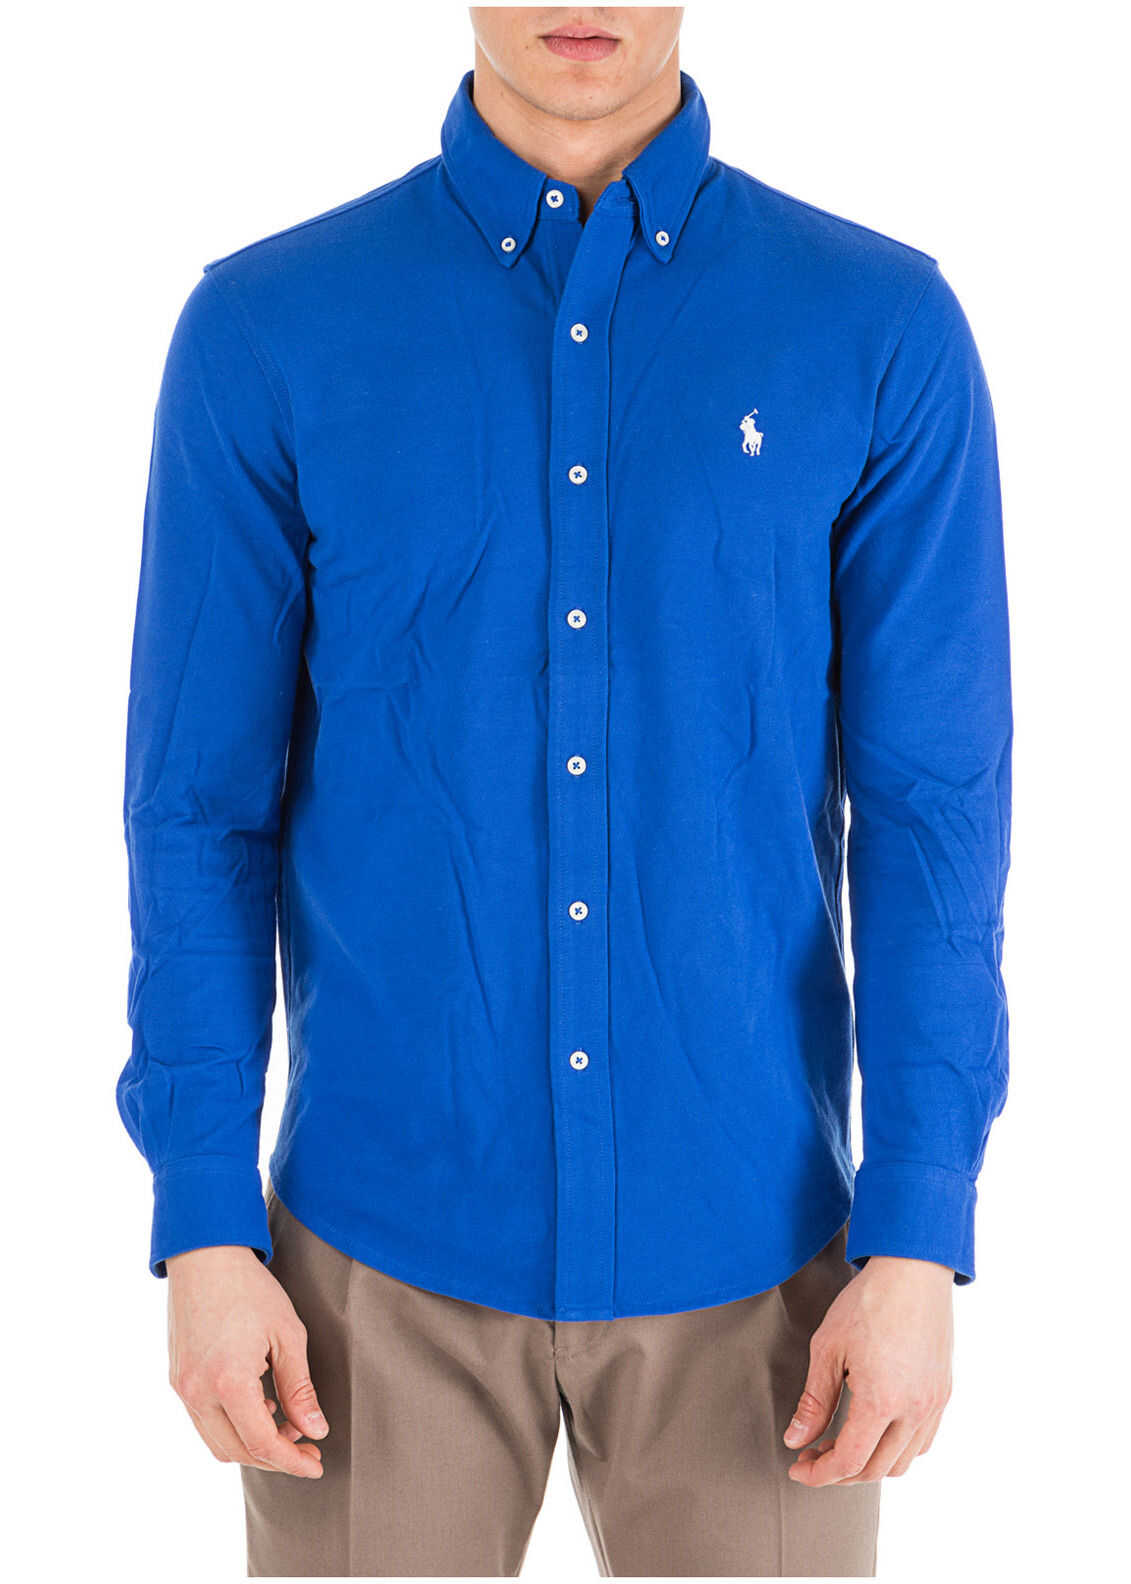 Ralph Lauren Dress Shirt* Blue